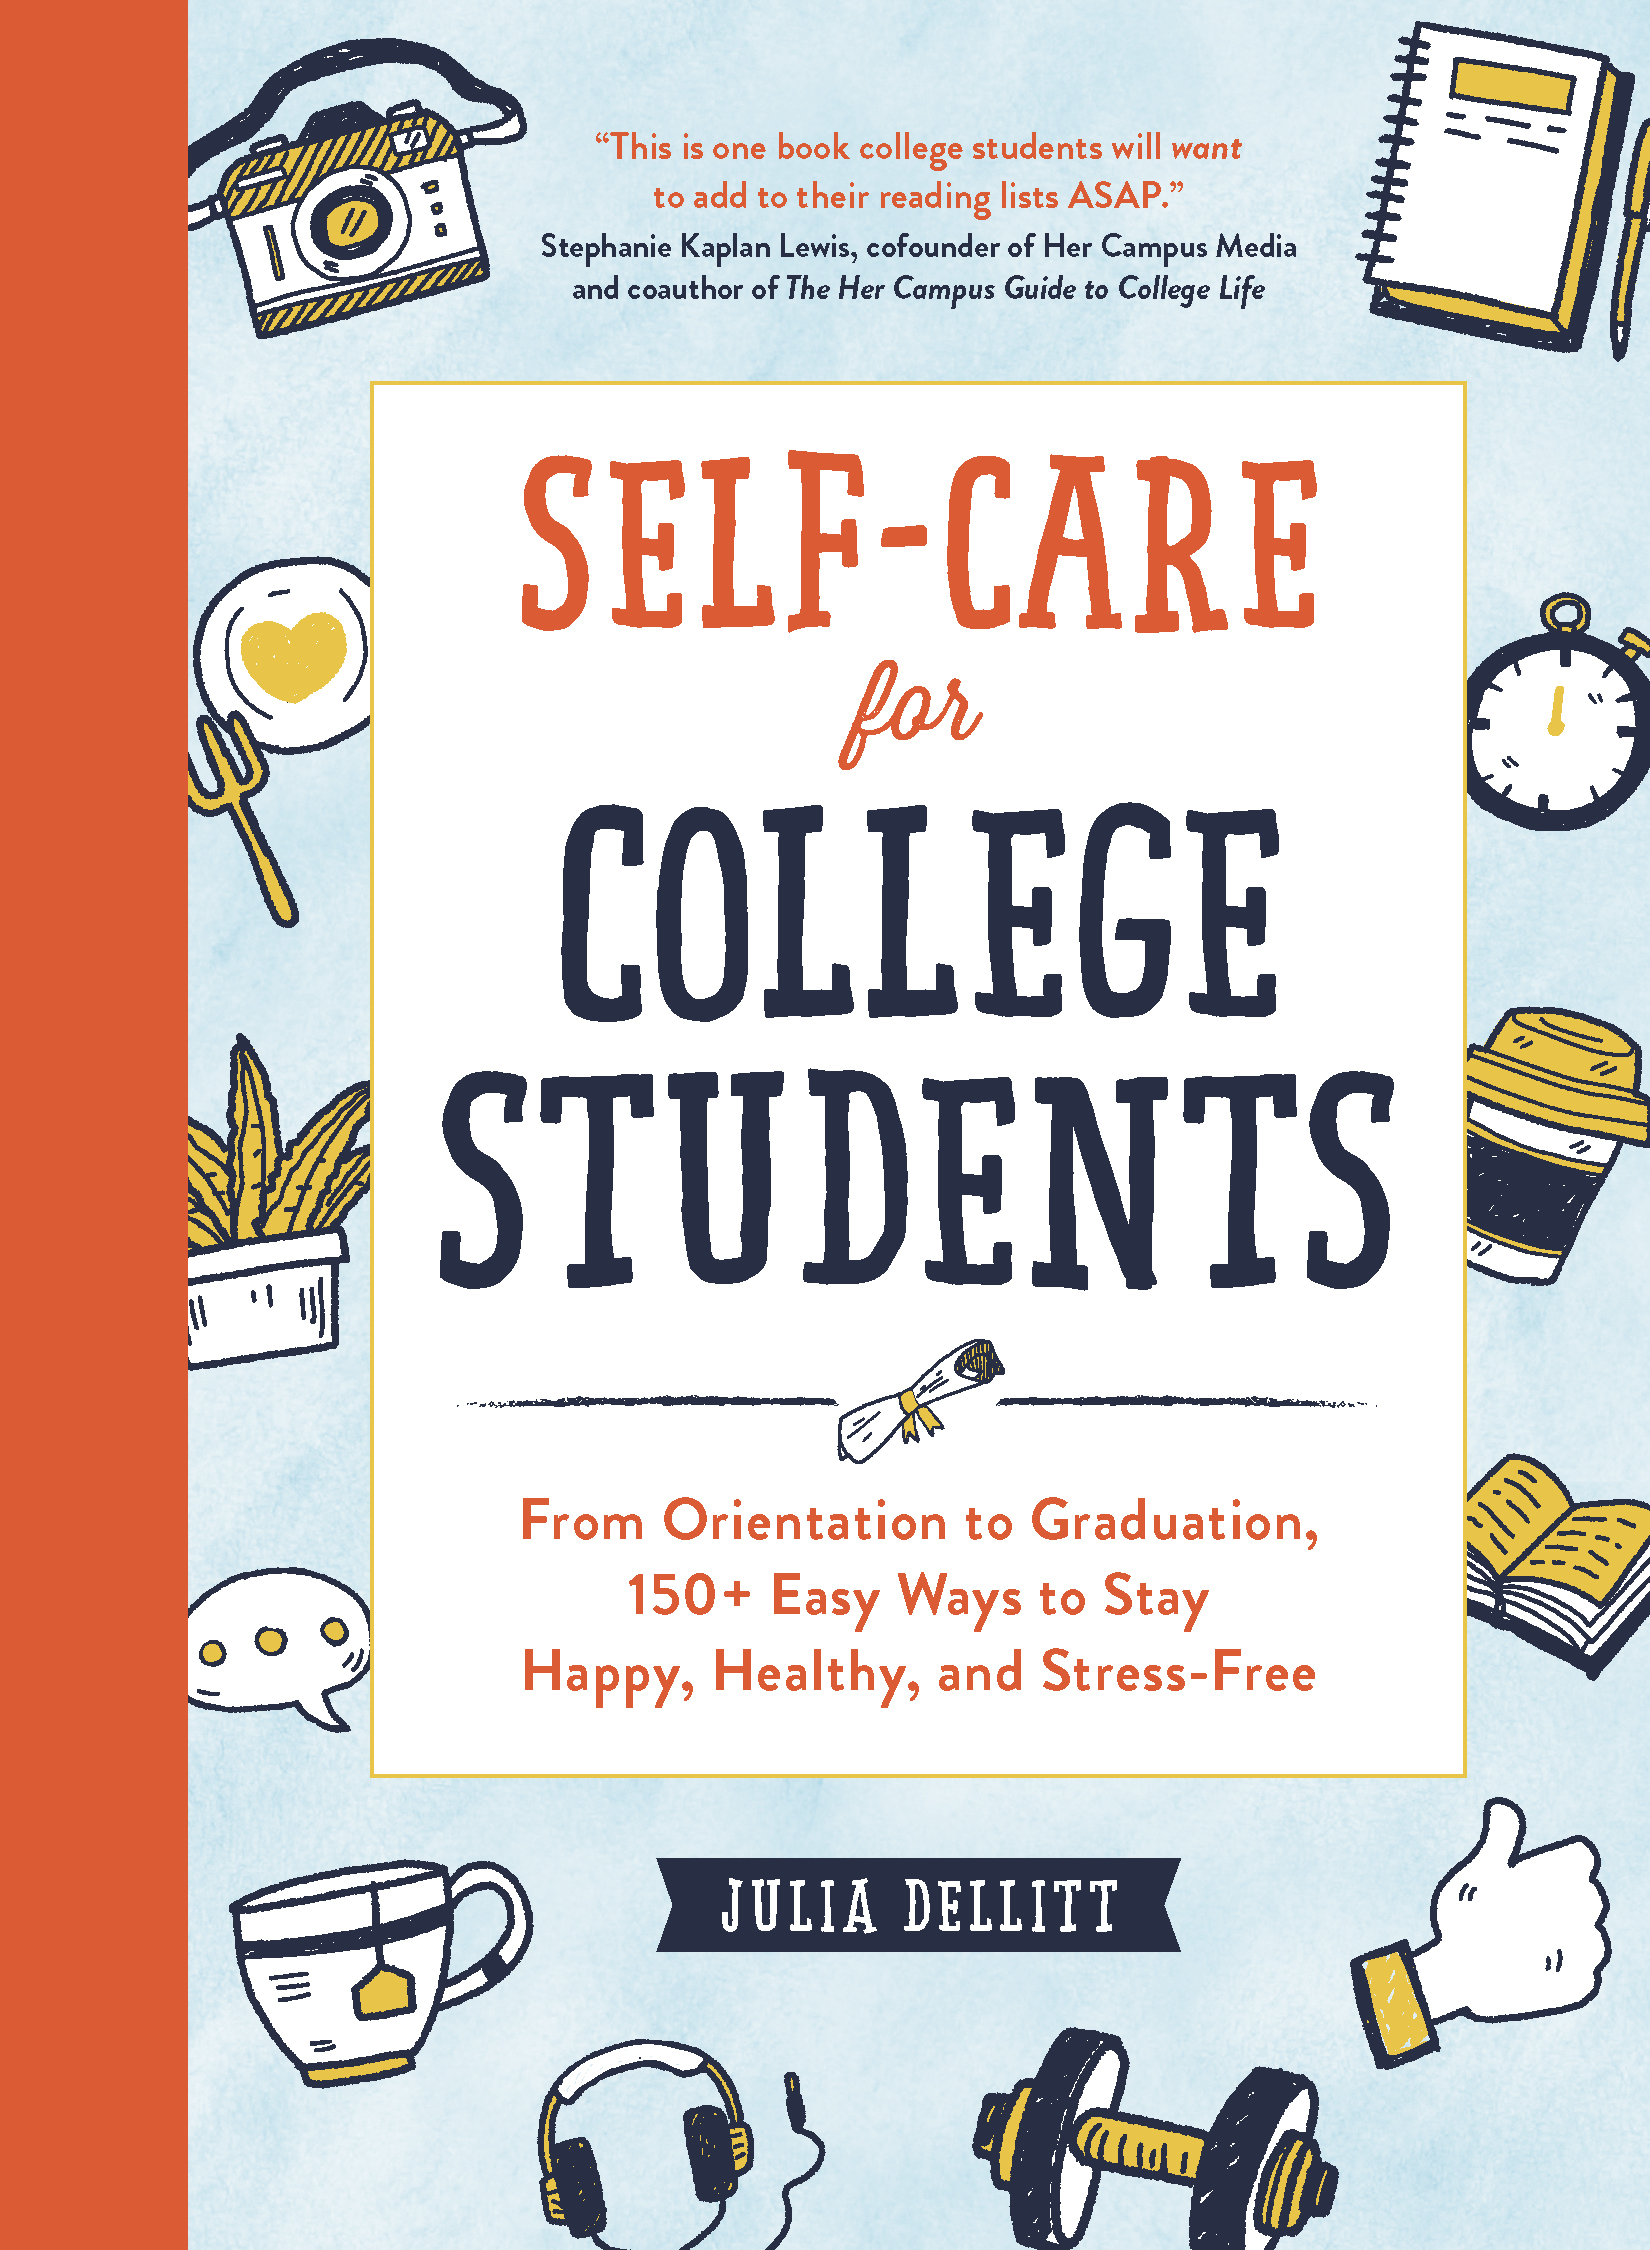 self-care for college students cover.jpg